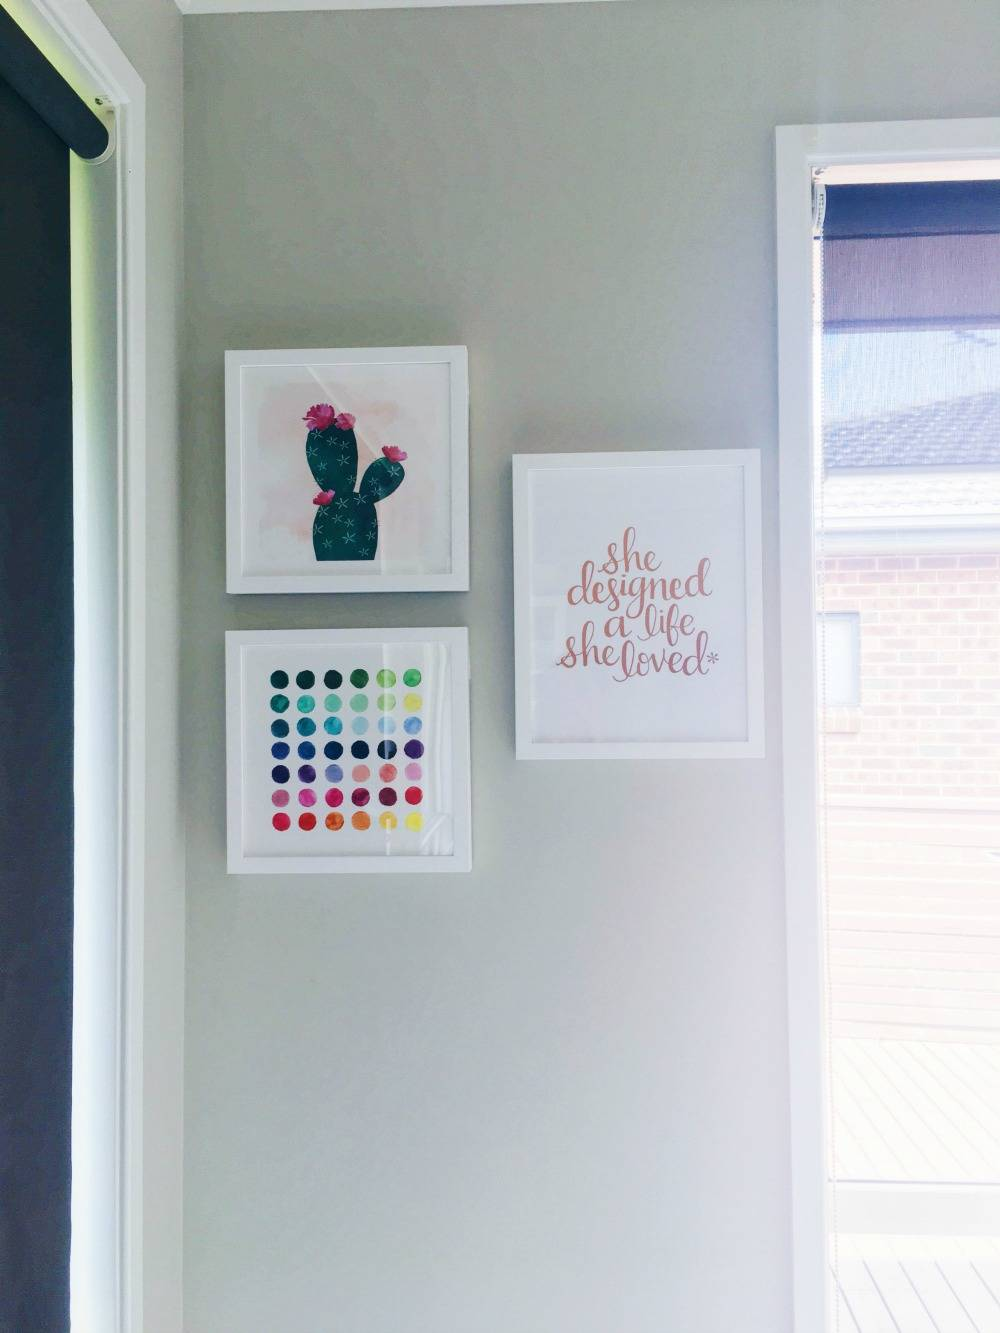 Colourful additions to my Home Office Work Space!